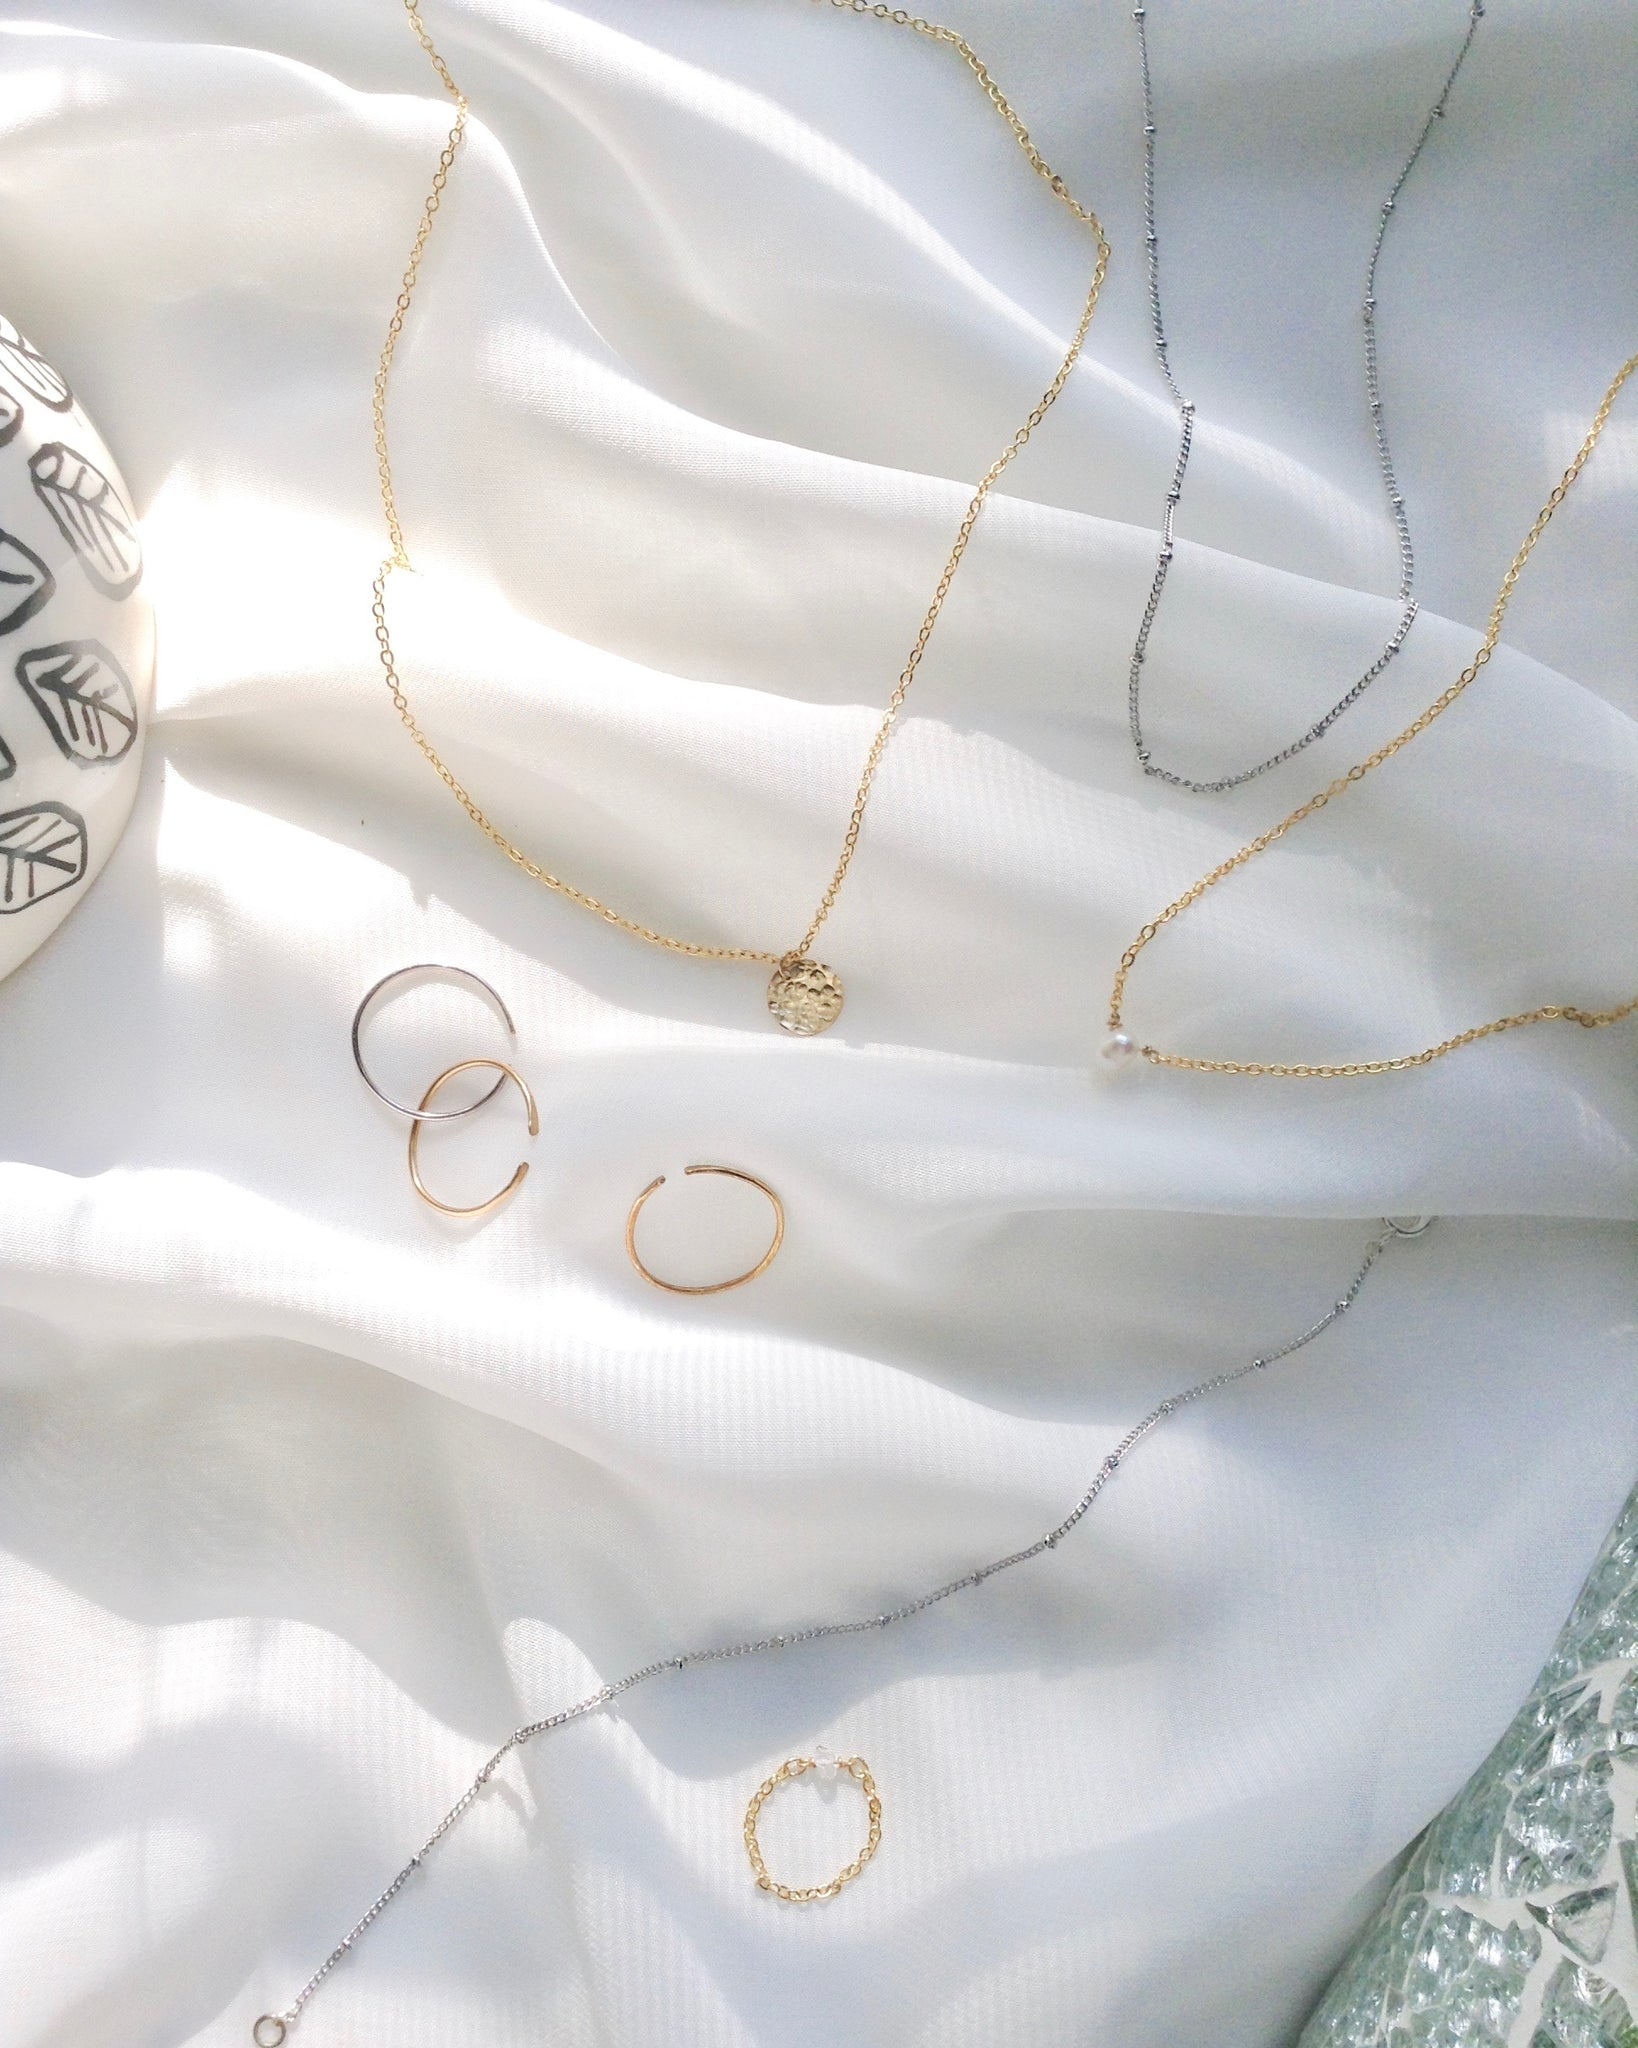 Affordable Dainty Jewelry